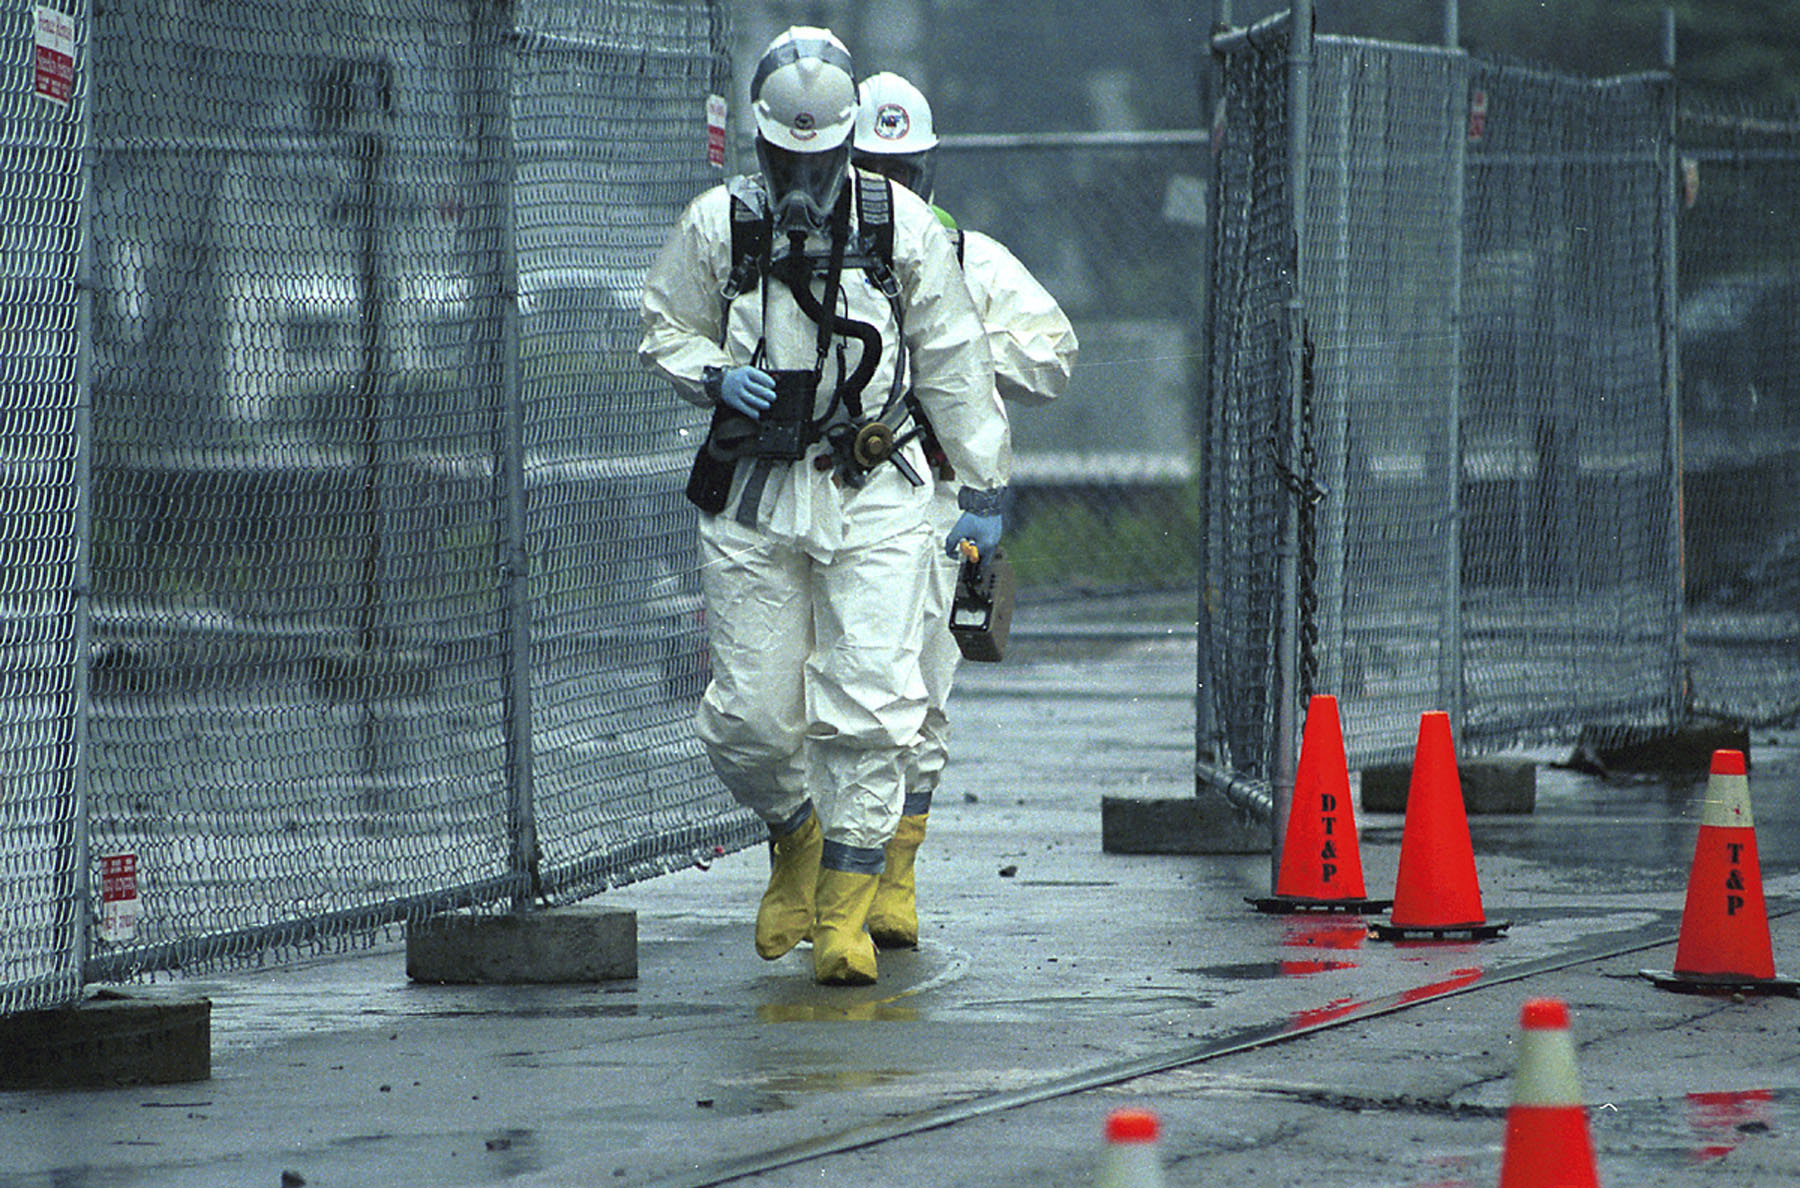 Chemical Spill Response